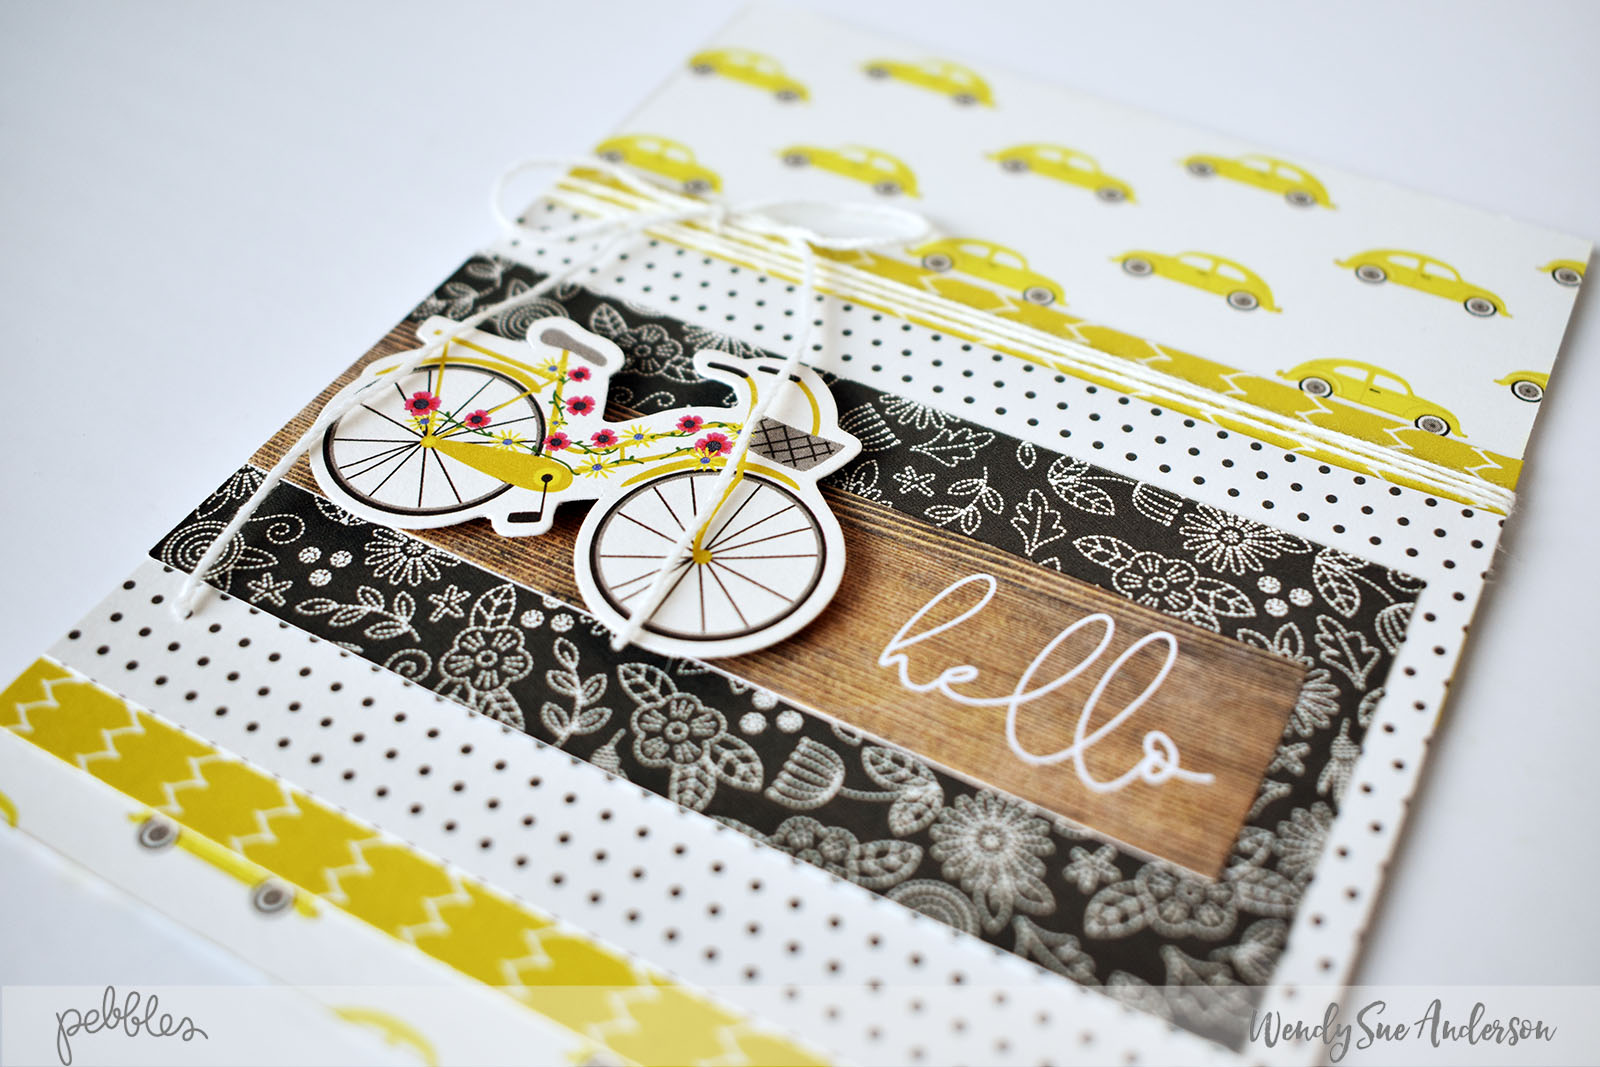 """My Bright Life"" Card Challenge by @WendySue for @PebblesInc."